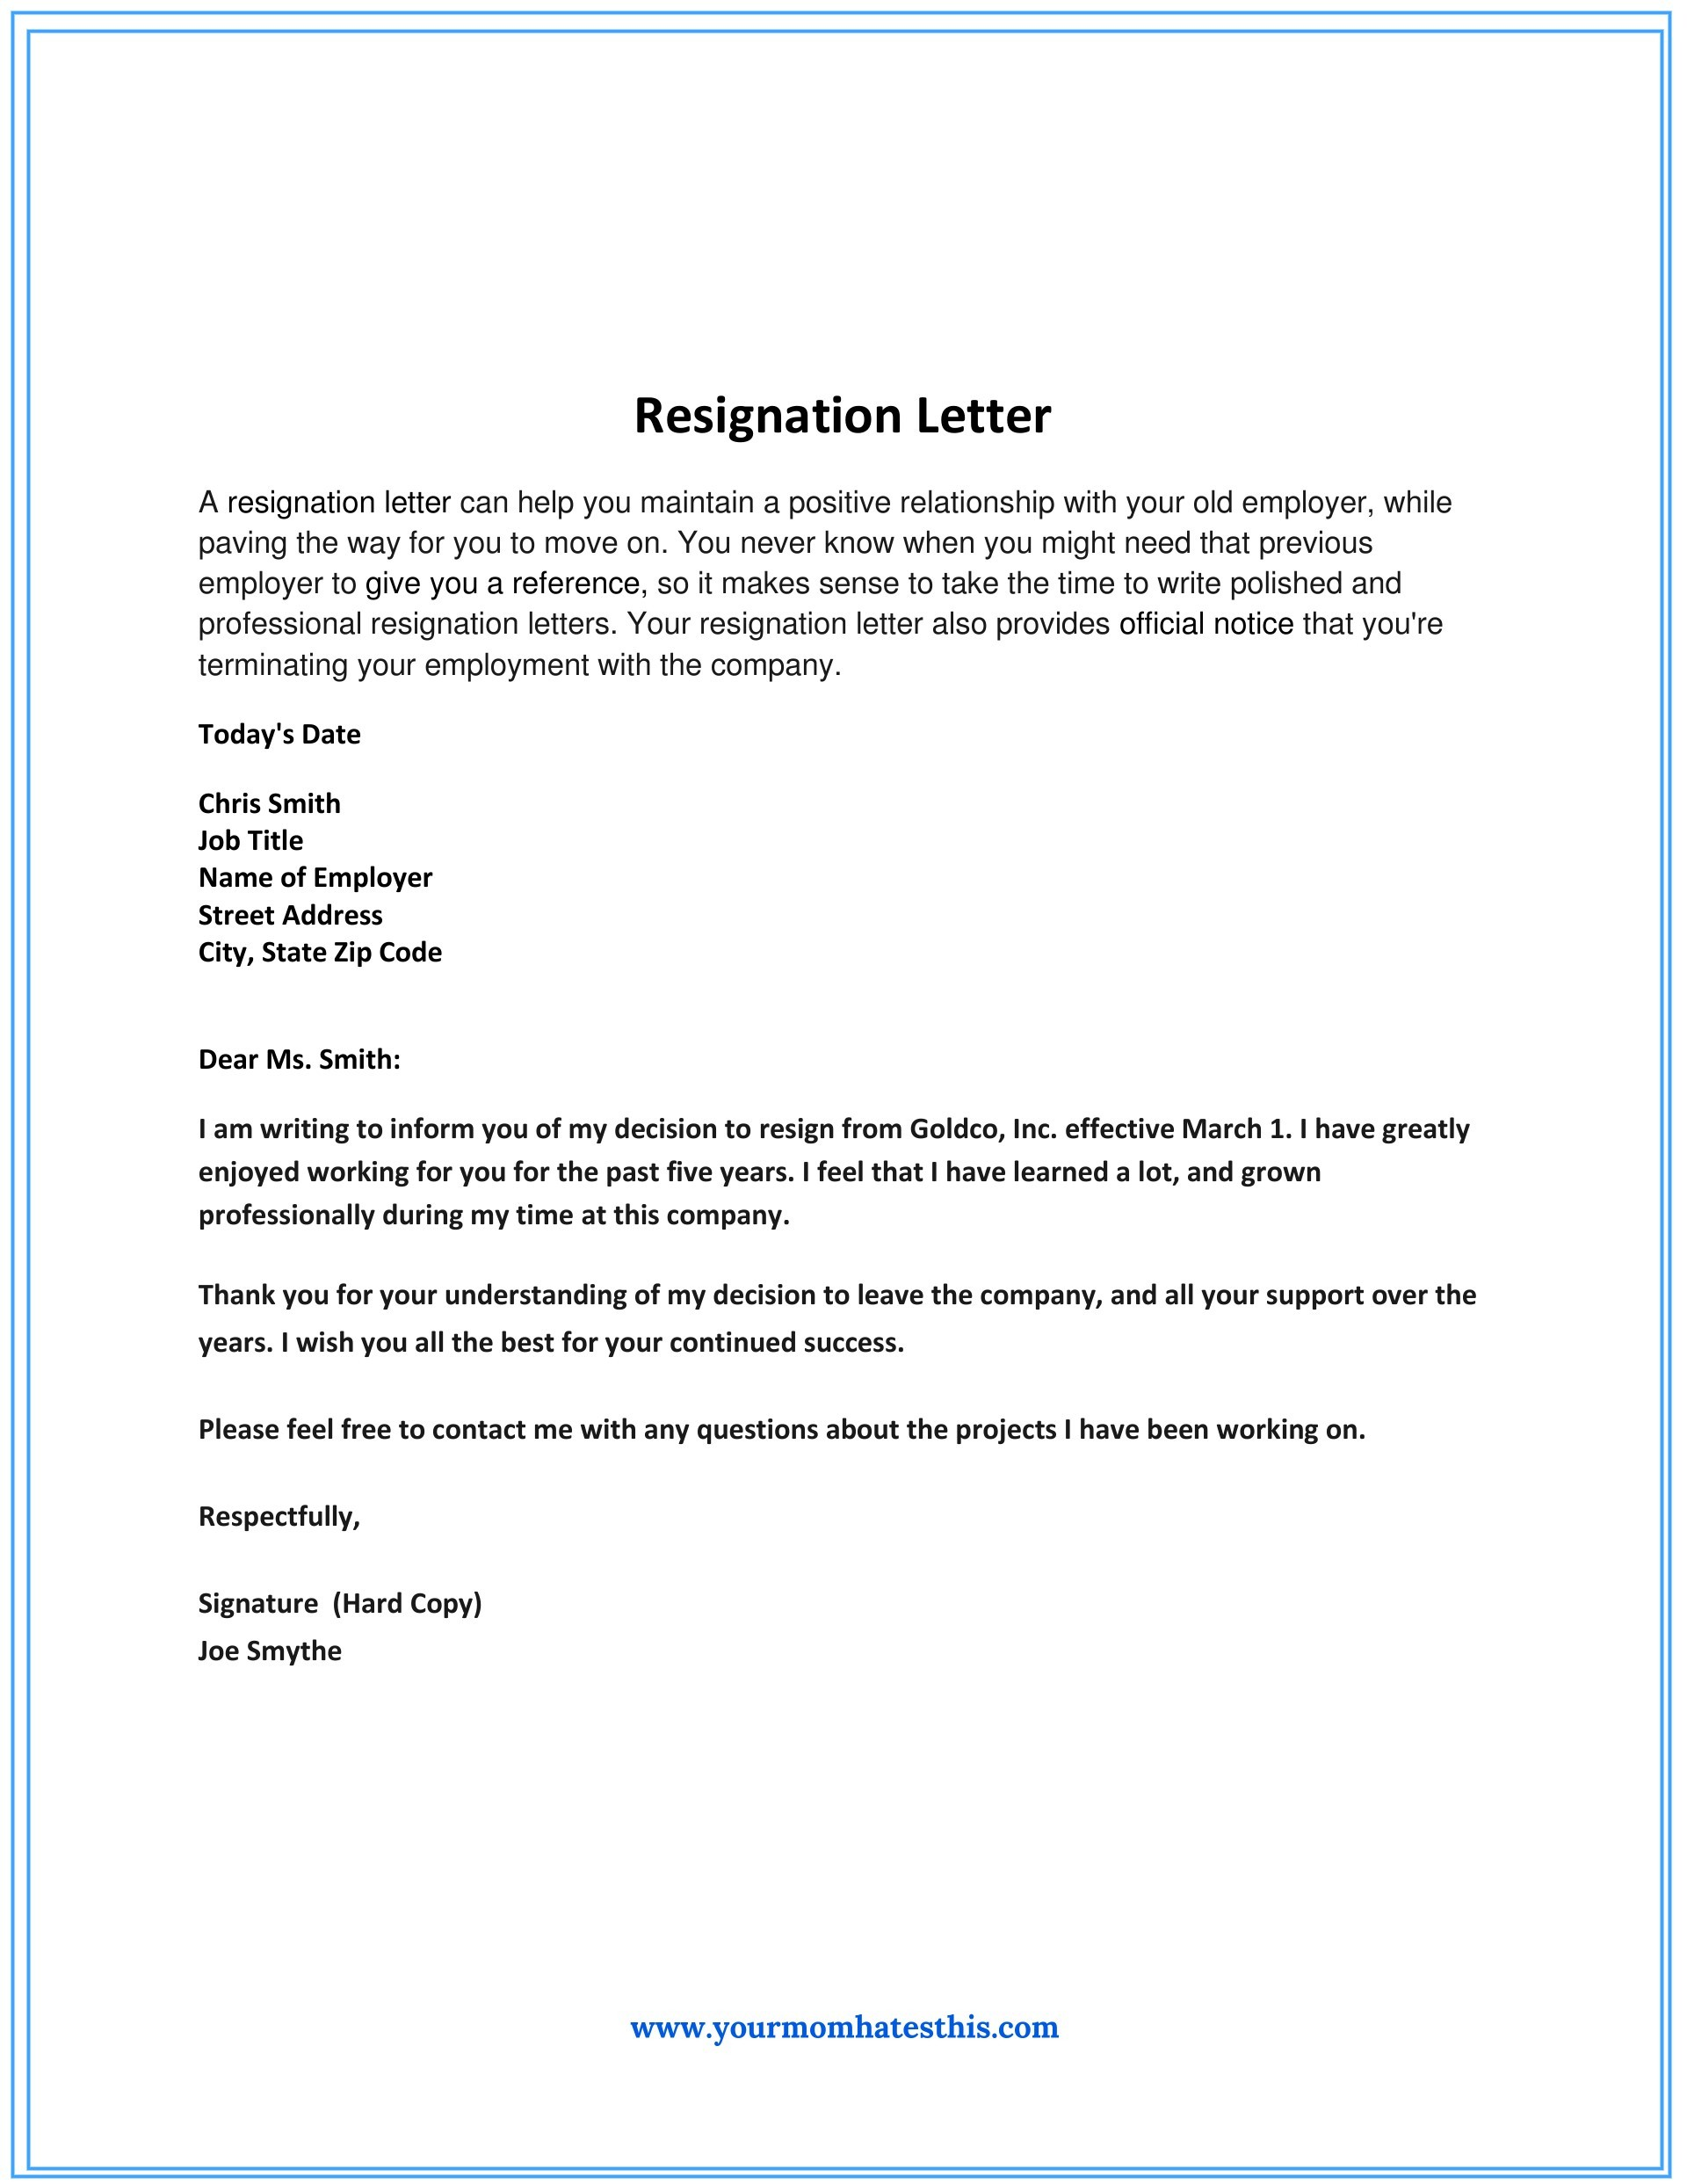 resignation letter memo  Dos and Don'ts for a Resignation Letter - resignation letter memo